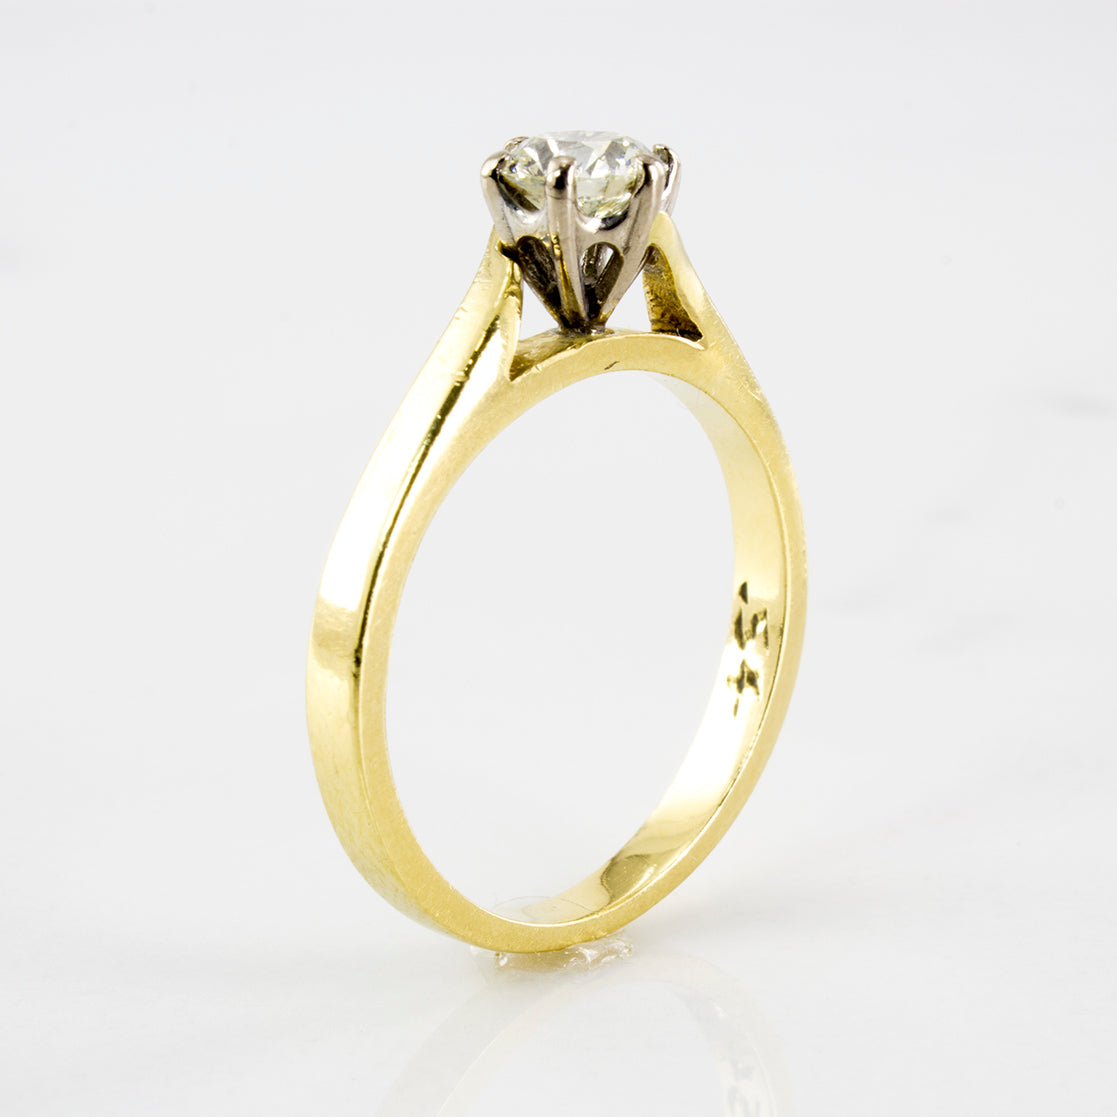 Elegant Diamond Solitaire Bypass Ring | 0.54 ctw | SZ 7 |